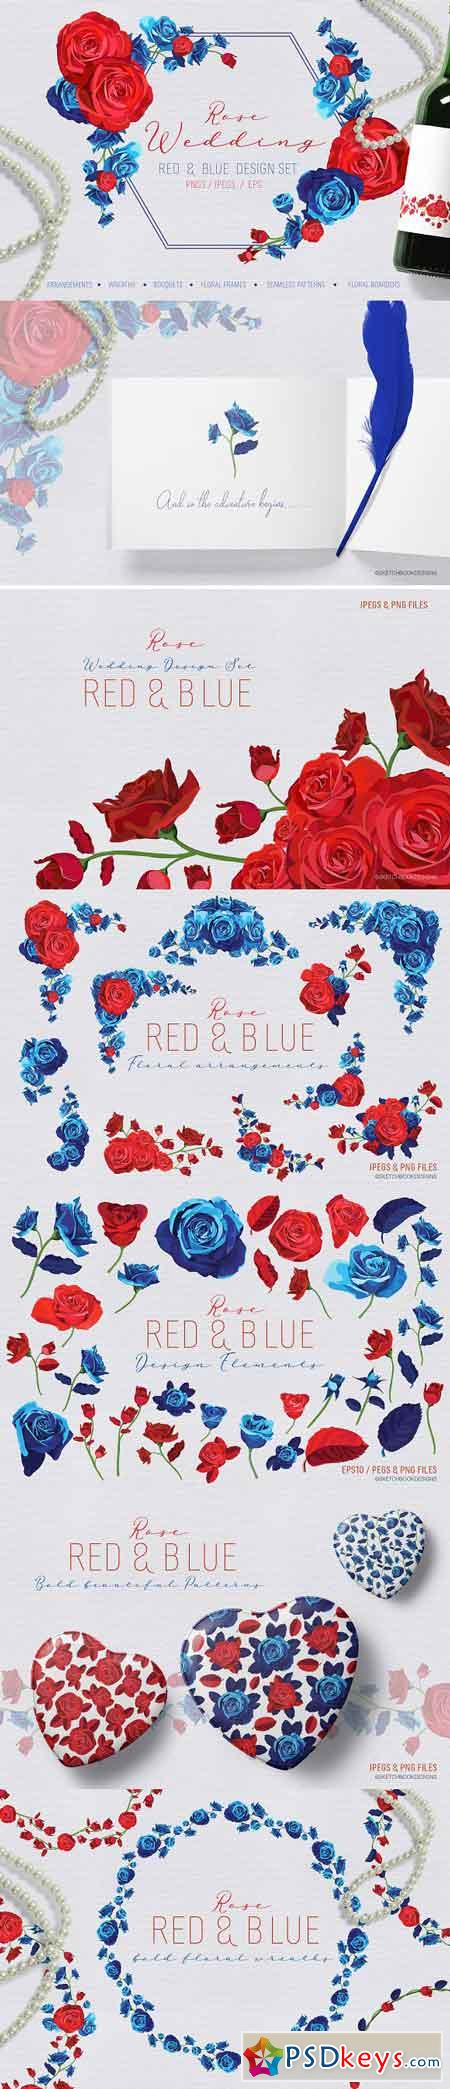 Rose Wedding Red and Blue Design Set 2897785